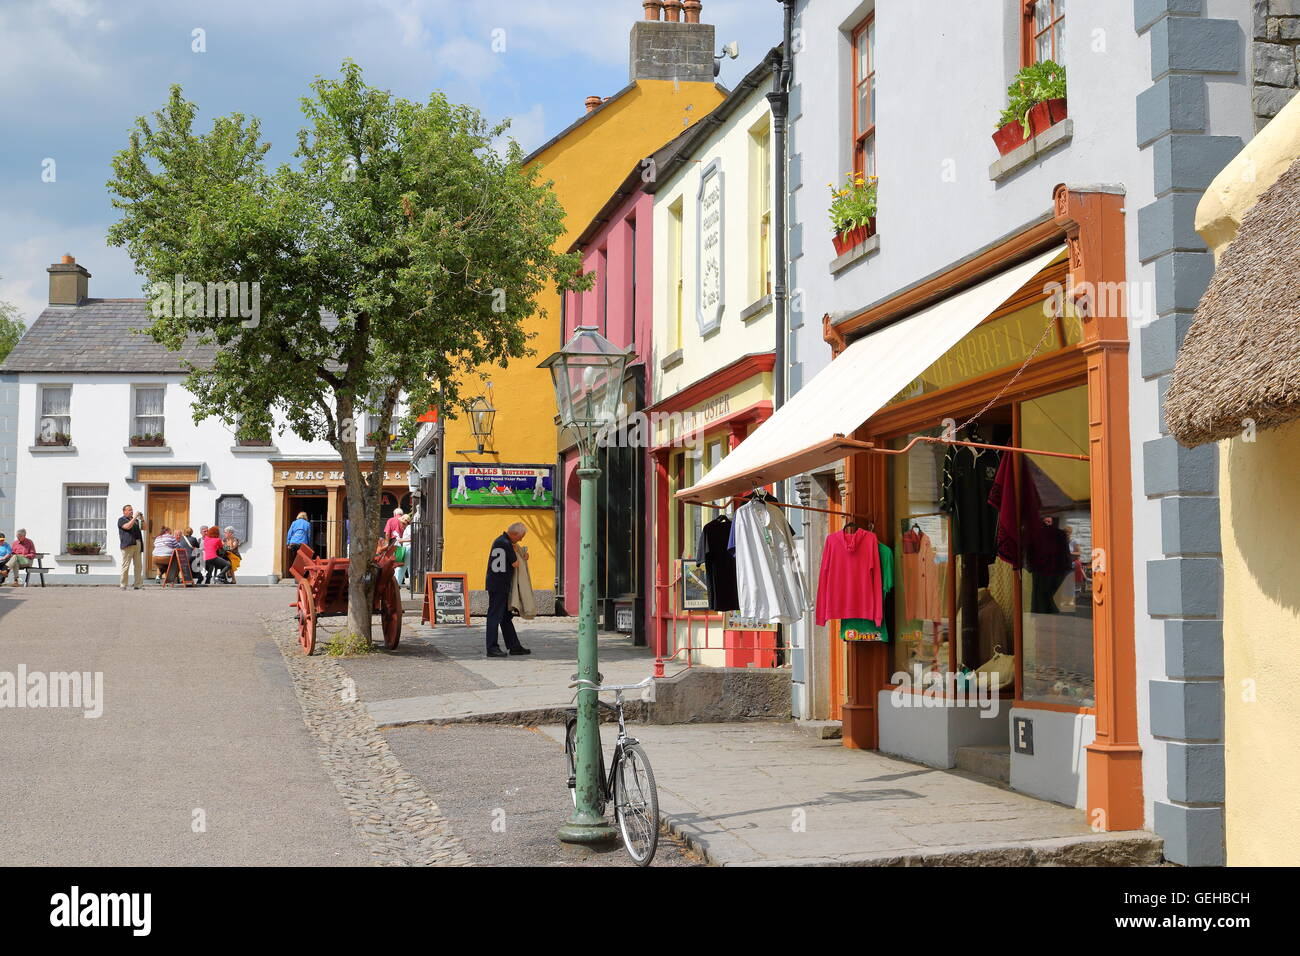 view-of-bunratty-castle-folk-park-in-county-clare-republic-of-ireland-GEHBCH.jpg